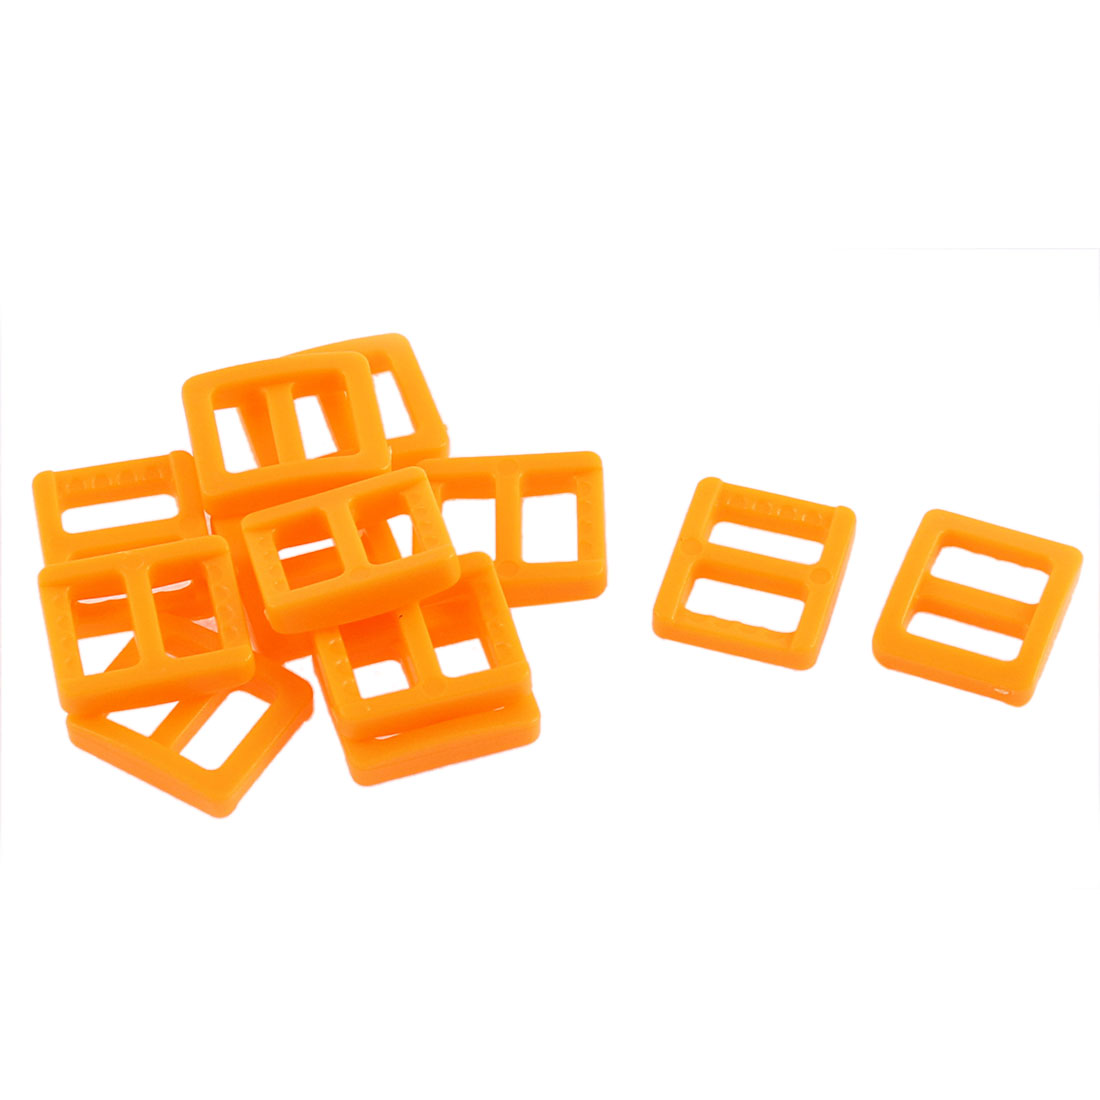 Webbing Bag Plastic Replacement Tri Glide Buckle Strap Keeper Orange 12 Pcs